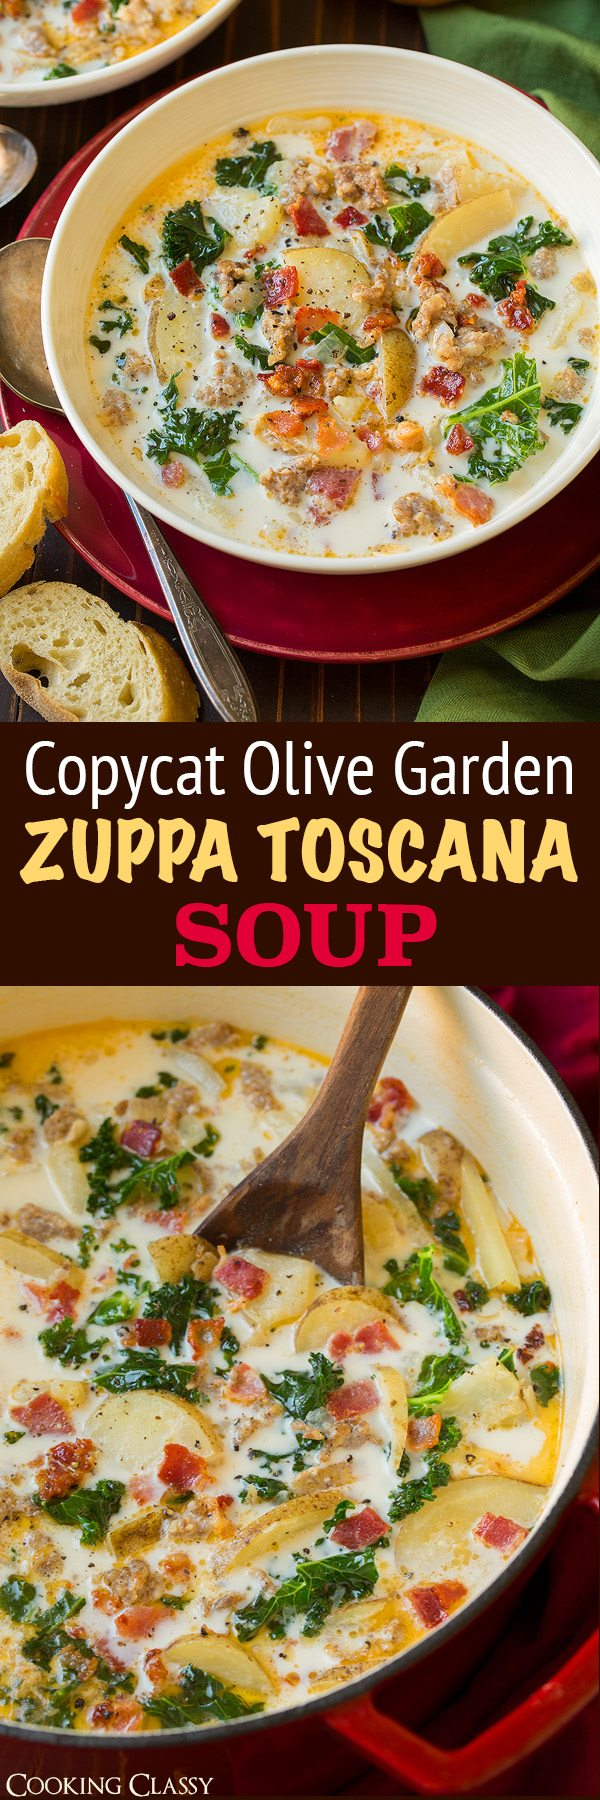 Zuppa Toscana Soup Olive Garden Copycat Recipe Cooking Classy